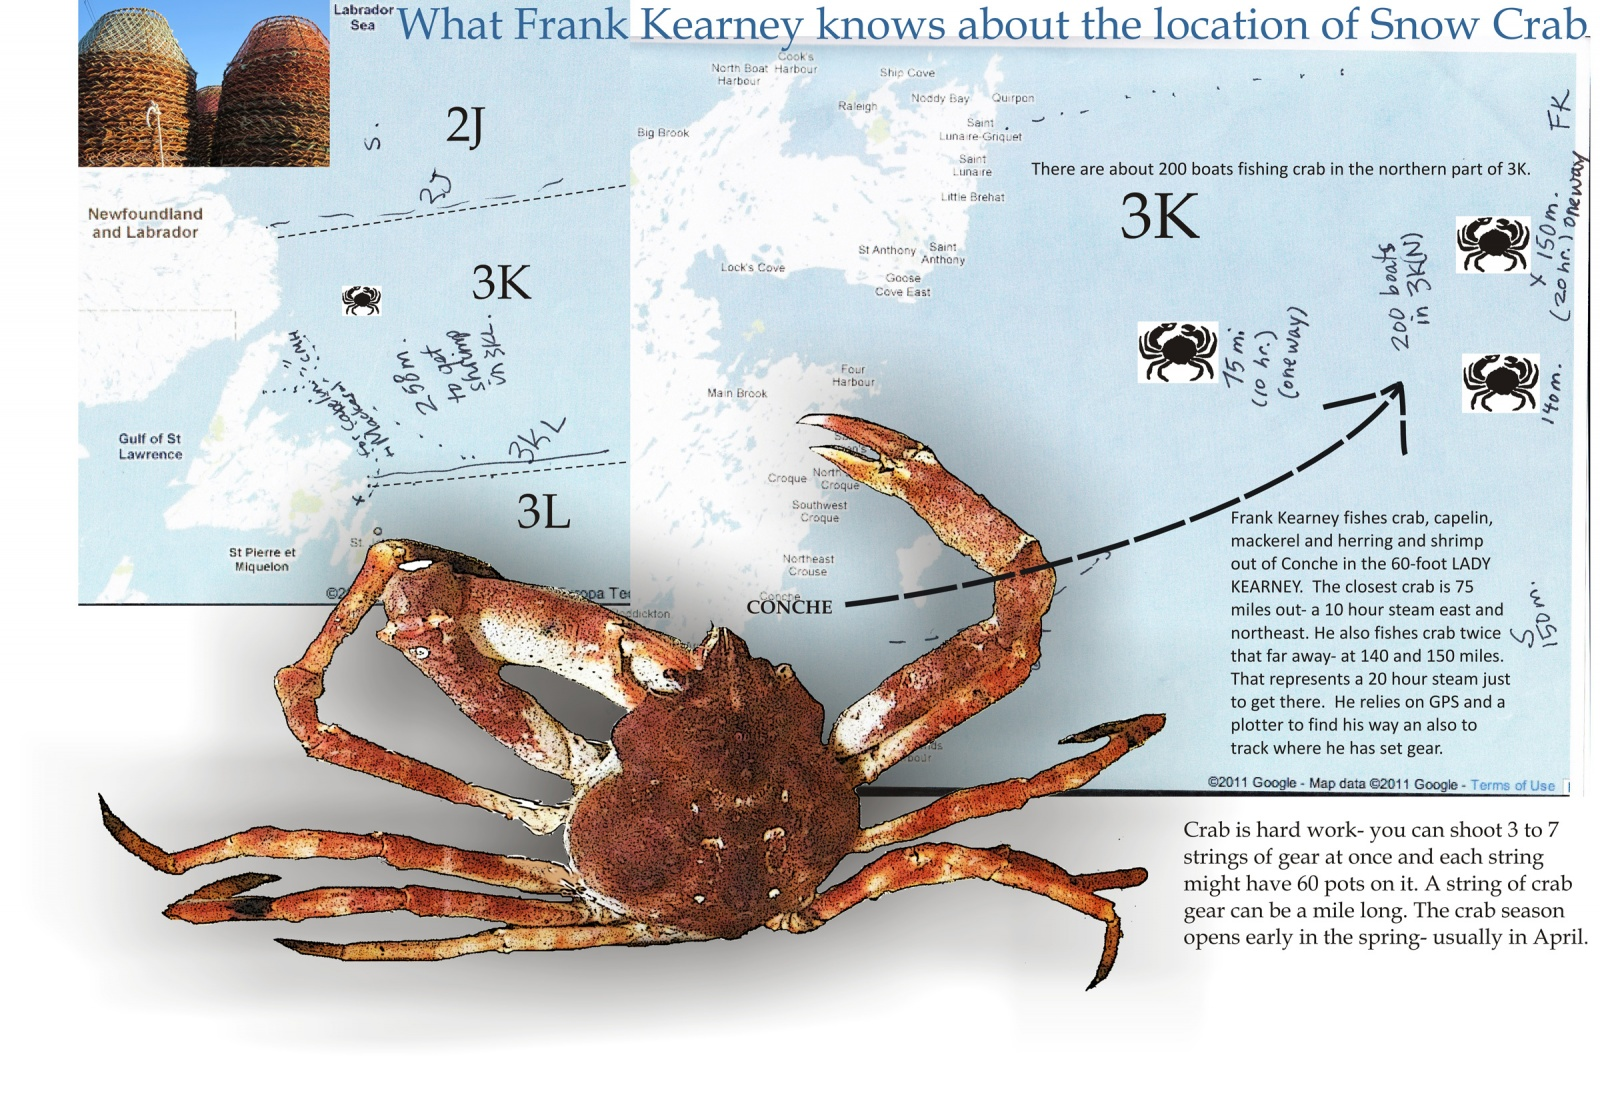 What Frank Kearney knows about the location of Snow Crab